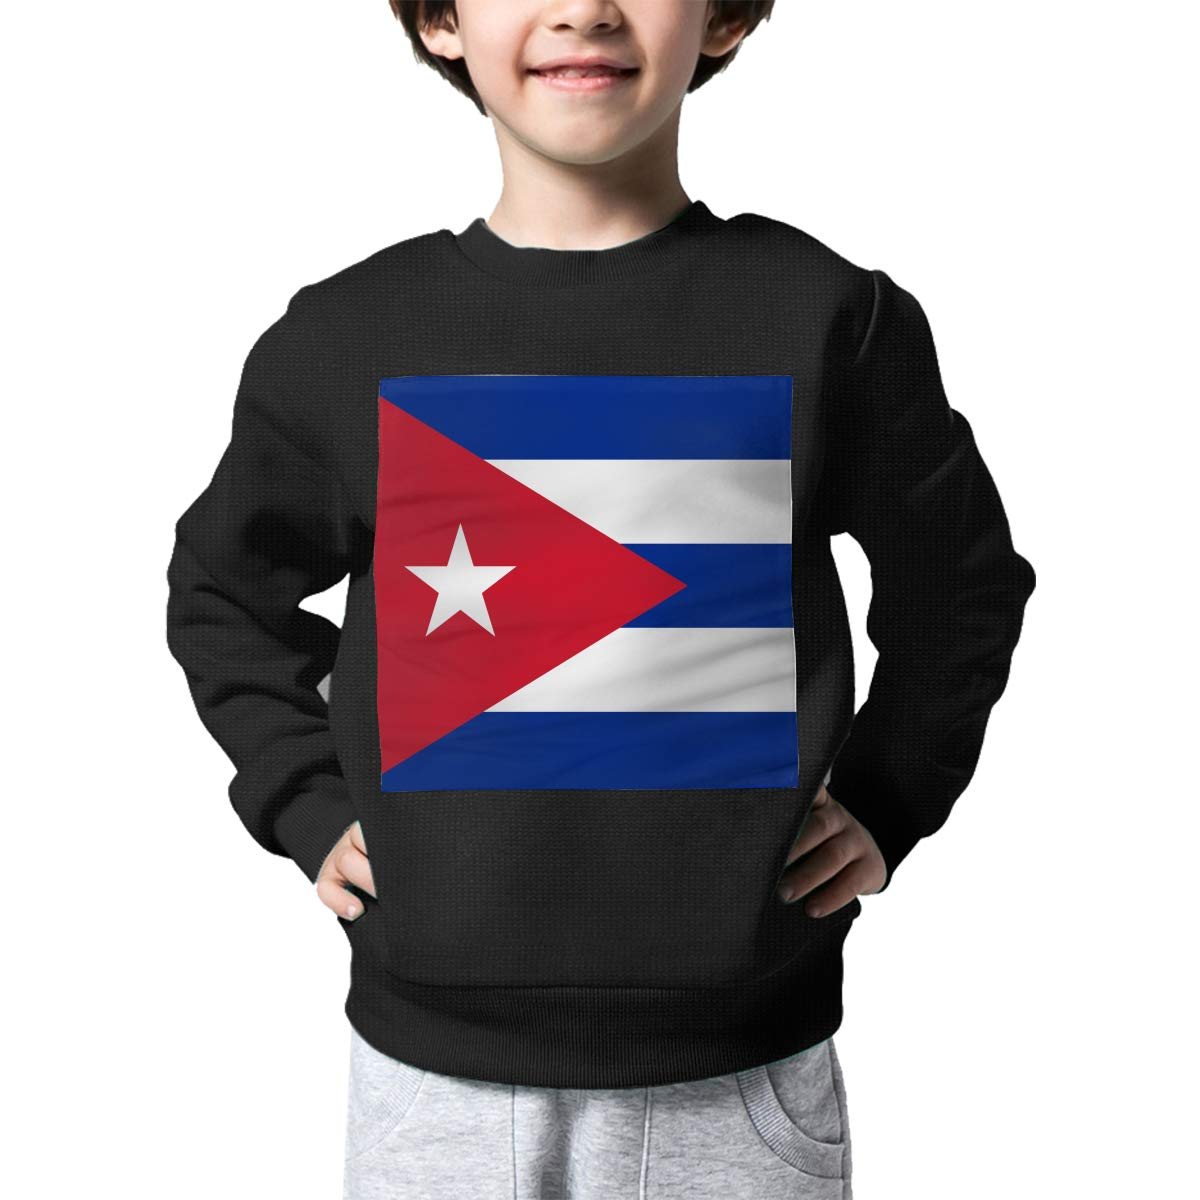 Cuba Flag Printed Toddler Childrens Crew Neck Sweater Long Sleeve Cute Knit Jumper Top